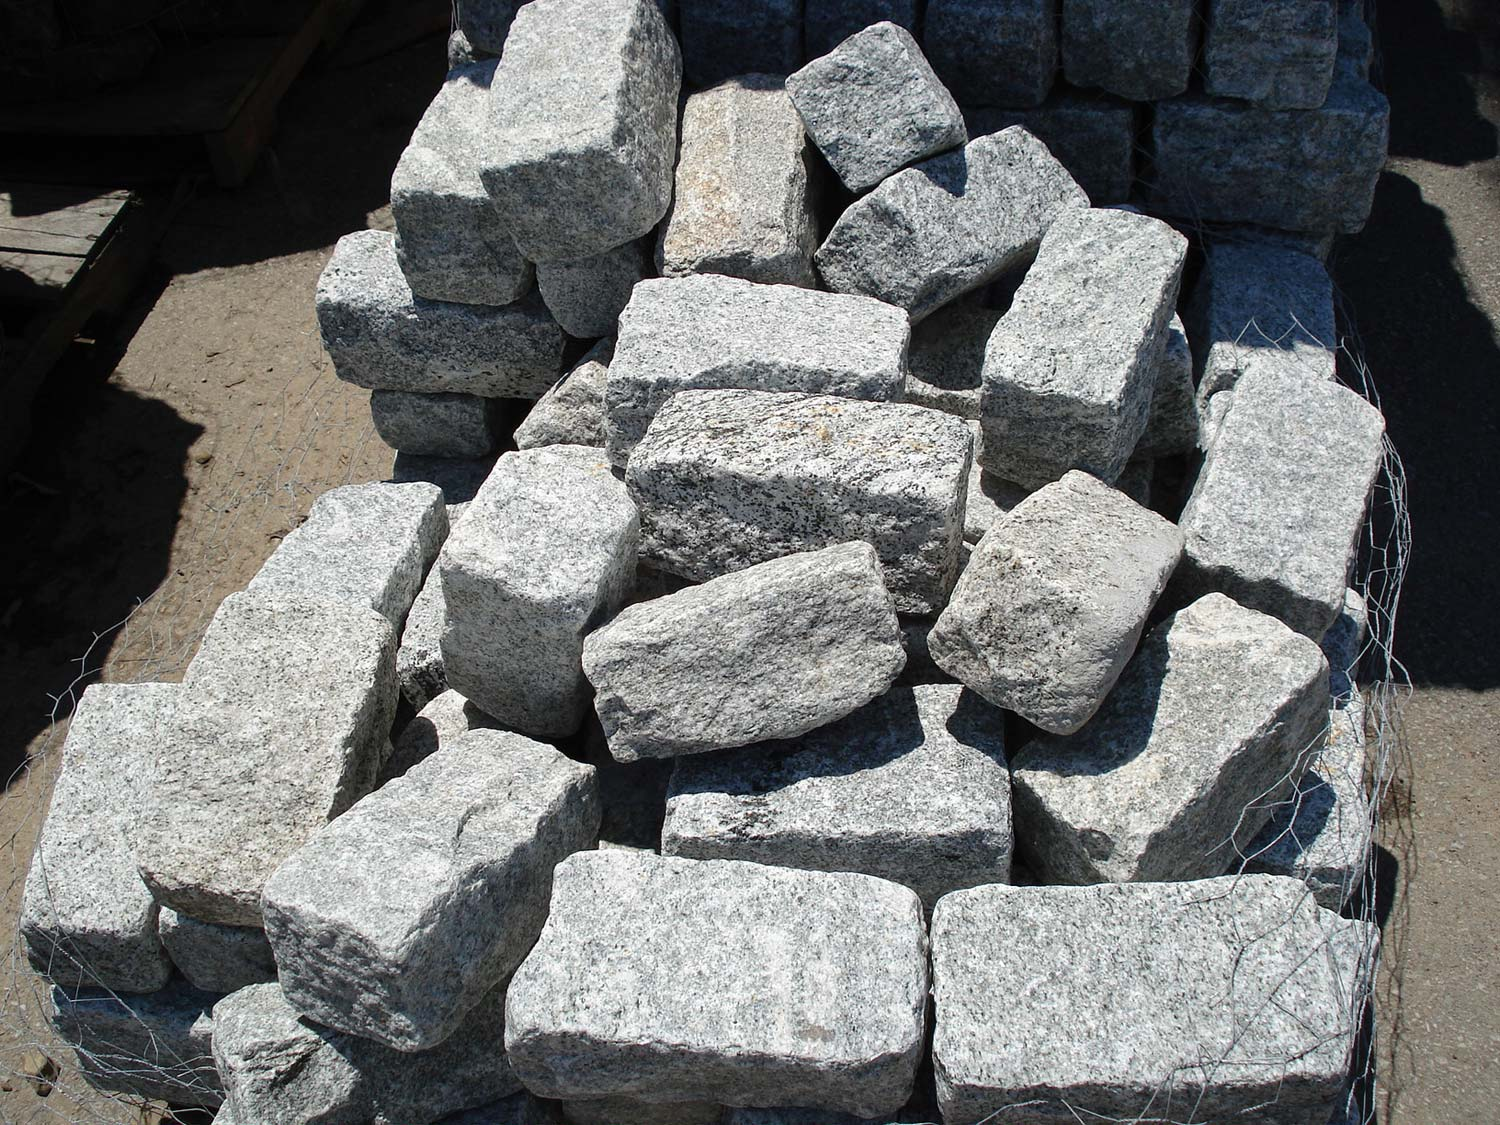 Granite What You Know About This Igneous Rock Granite4less Blog